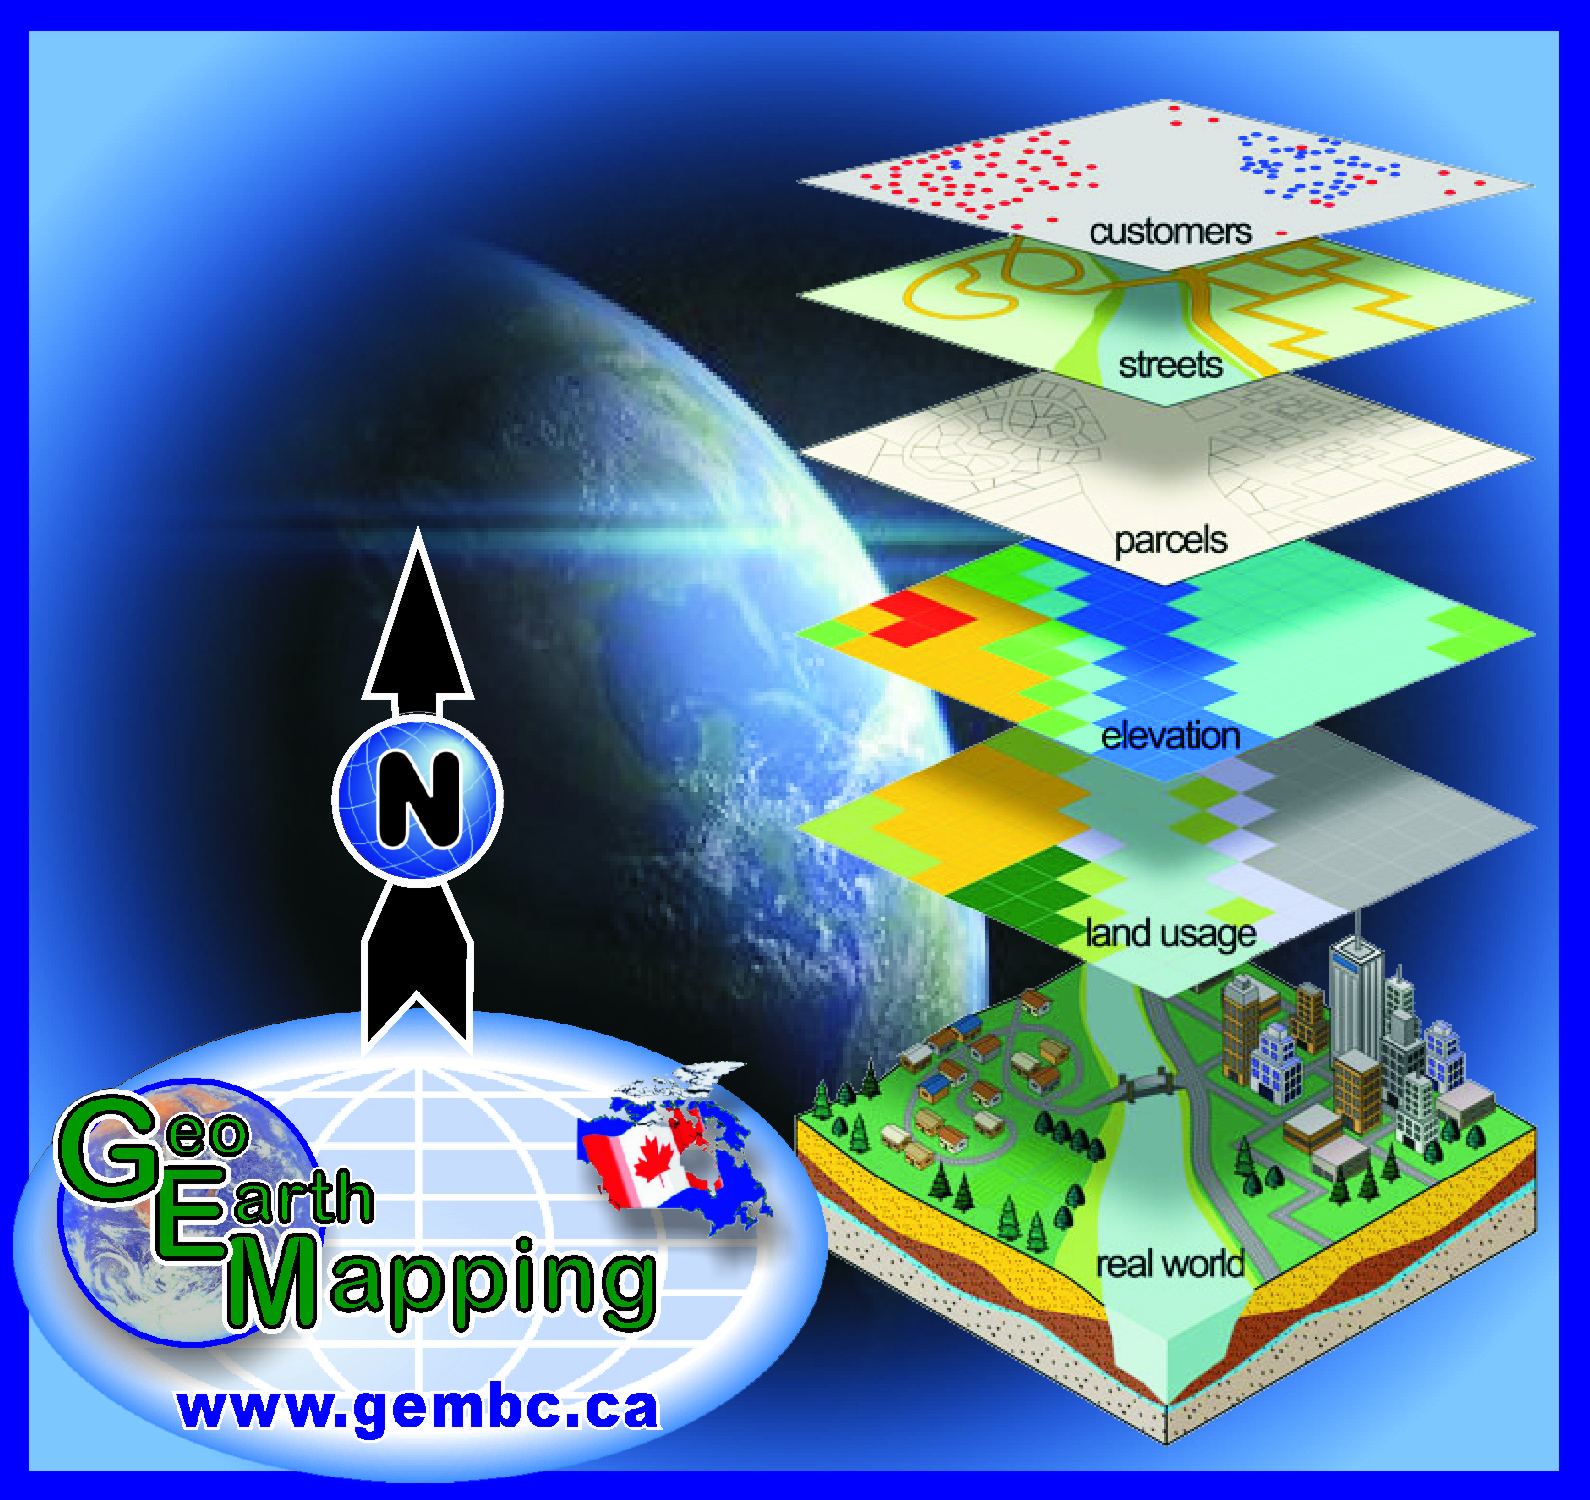 Geo Earth Mapping image 3